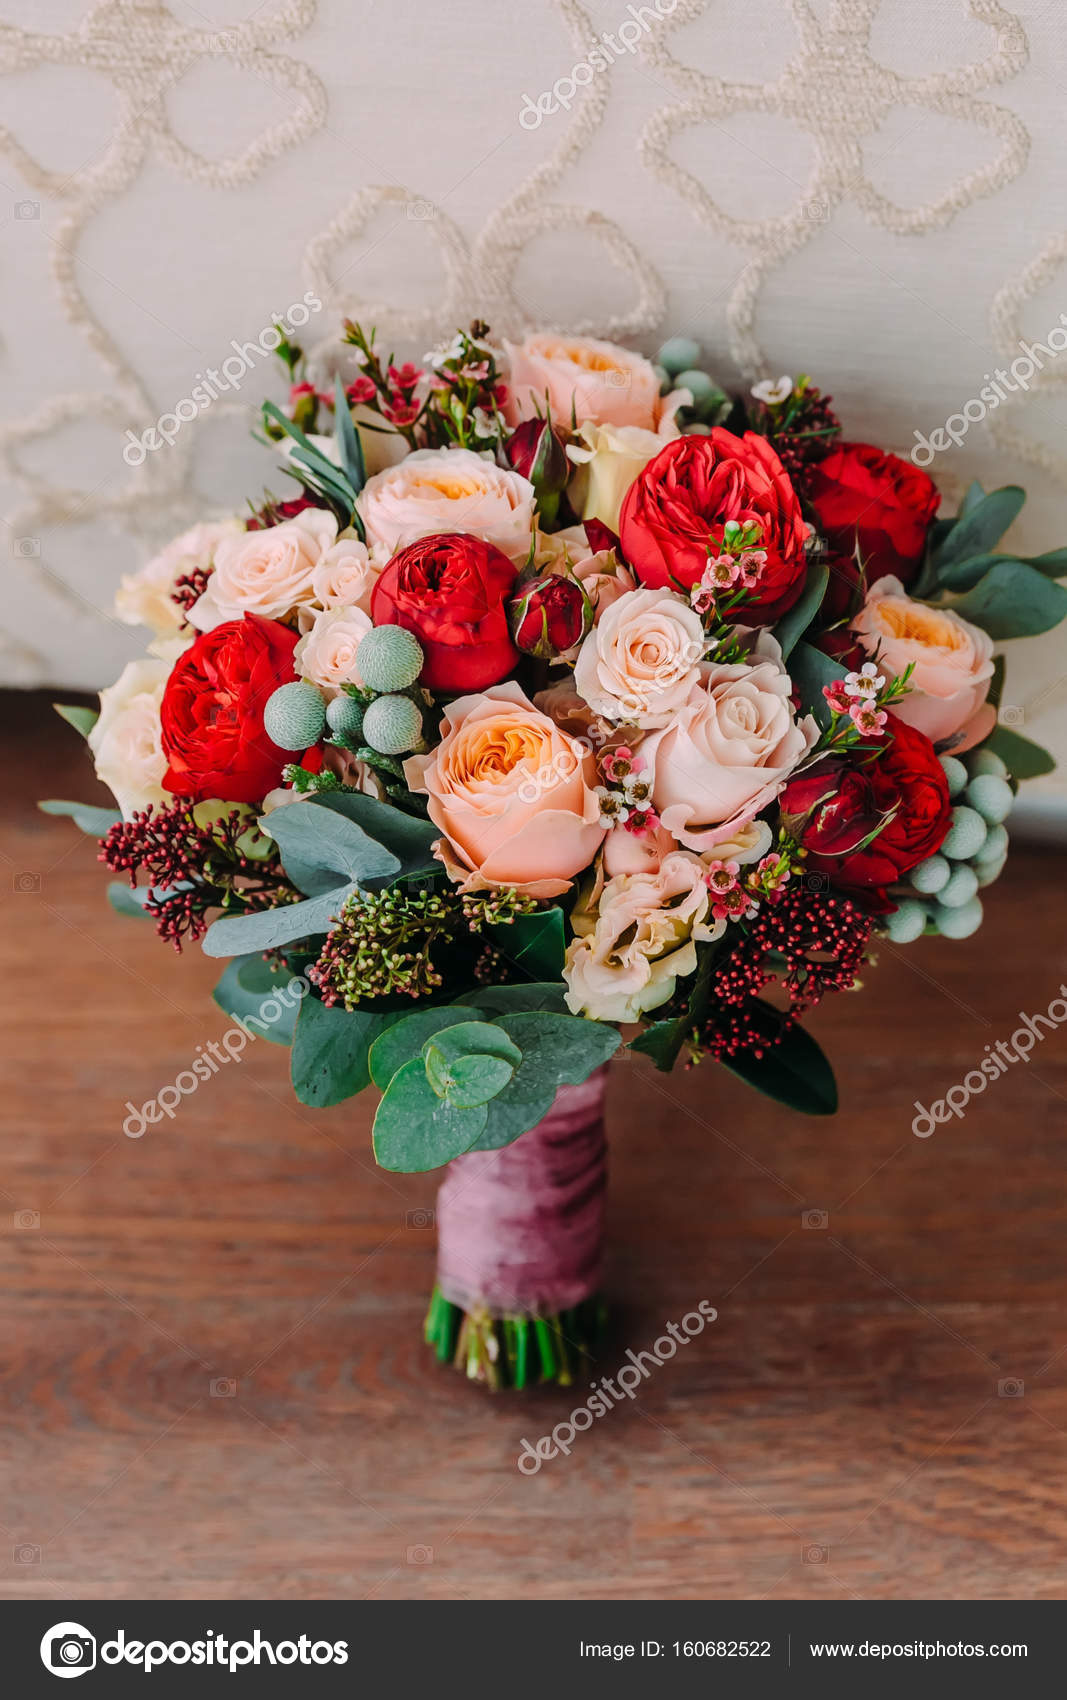 Pink And Red Flower Bouquet Beautiful Wedding Bouquet Of Red Flowers Pink Flowers And Greenery Is On The Wooden Floor Stock Photo C Stahov 160682522